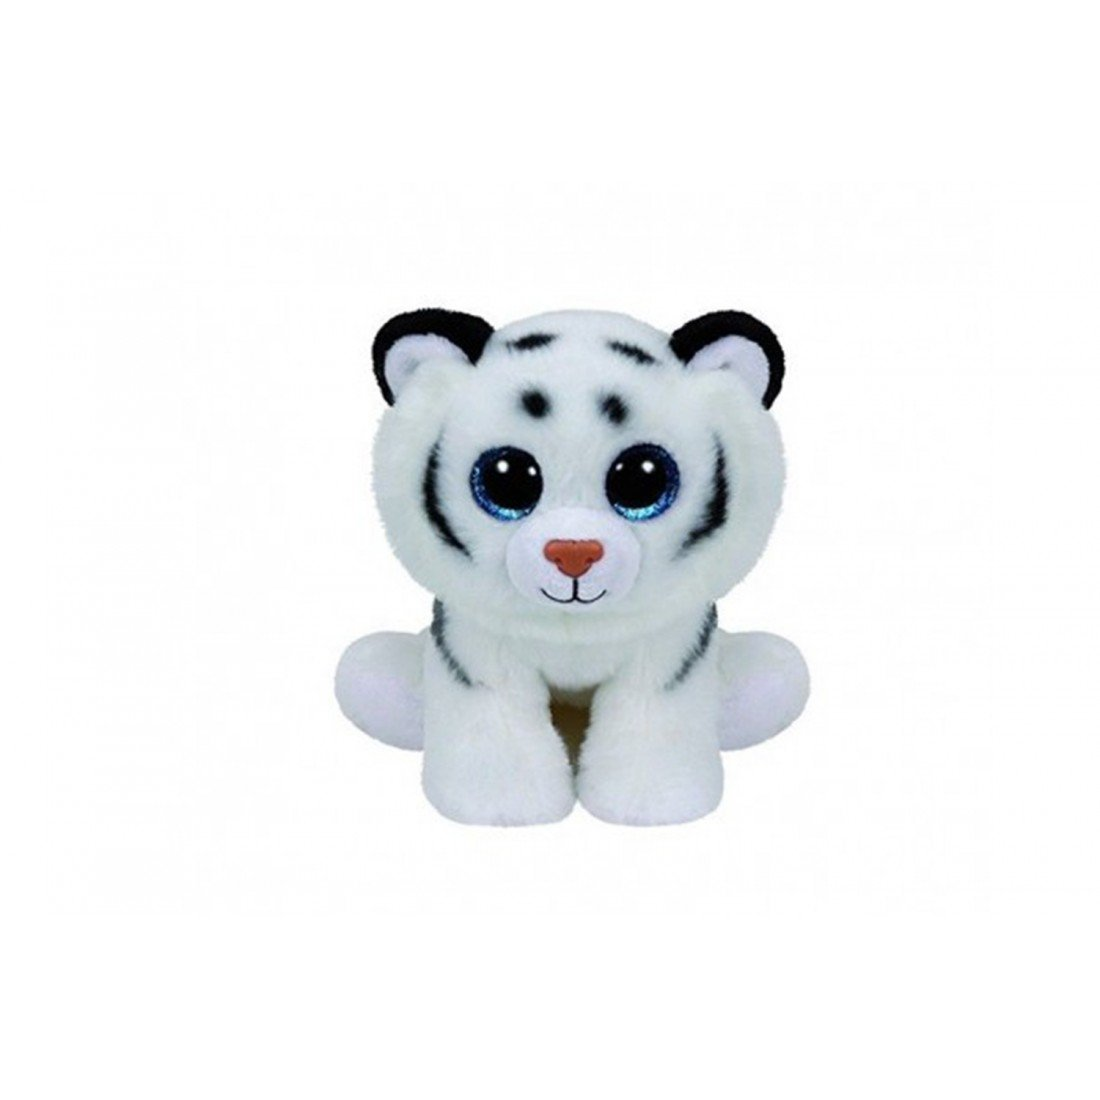 Amazon.com: TY BEANIE BABIES 15CM TUNDRA TIGER gift idea peluche toy puppet VX308: Clothing